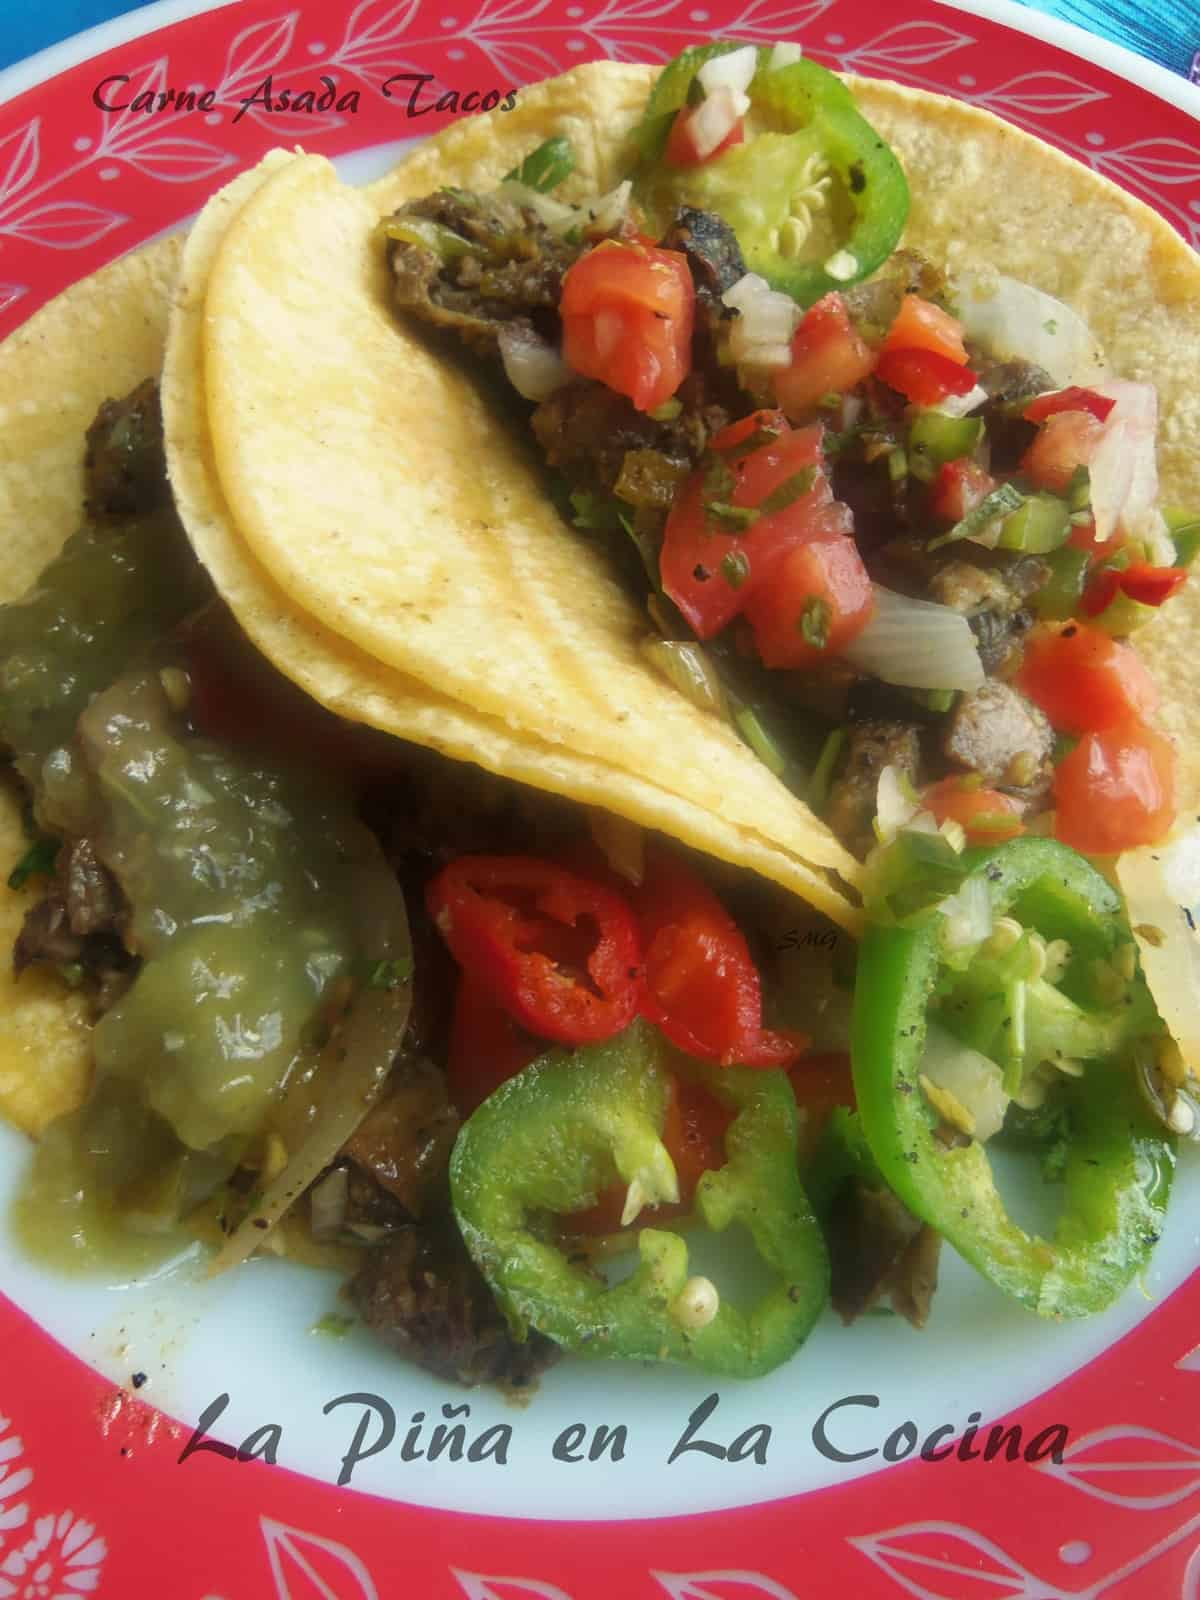 Using my leftovers of Reverse Marinated Steak, I quickly assembled these tasty tacos for brunch the next day.